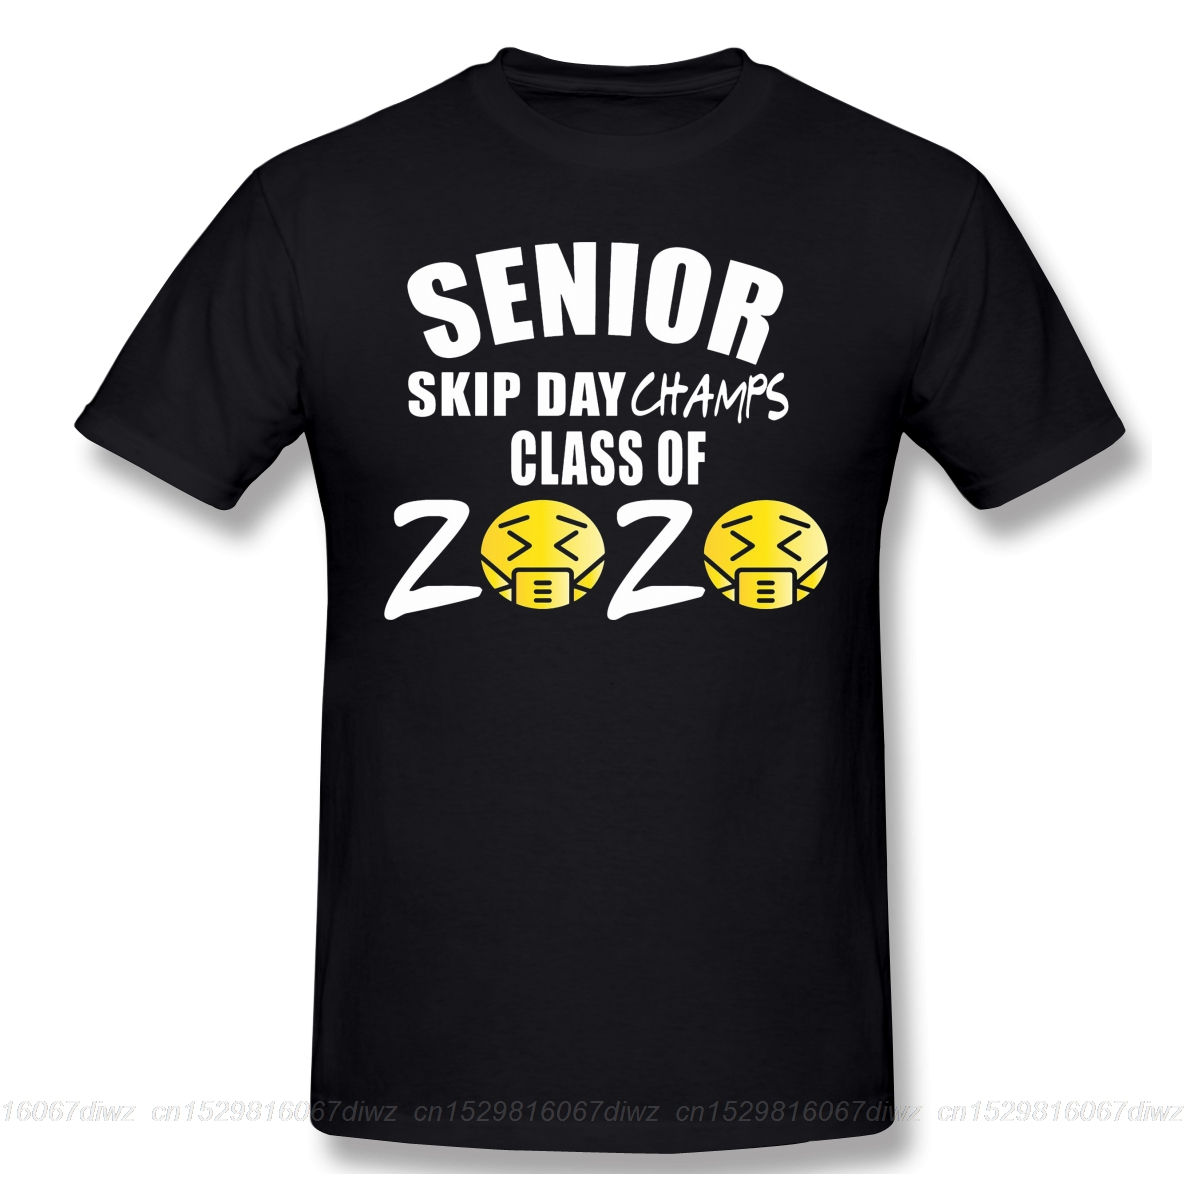 Senior Skip Day Champs black T Shirt senior class of 2020 homme T-Shirt Tees Pure Cotton Amazing Short Sleeve image